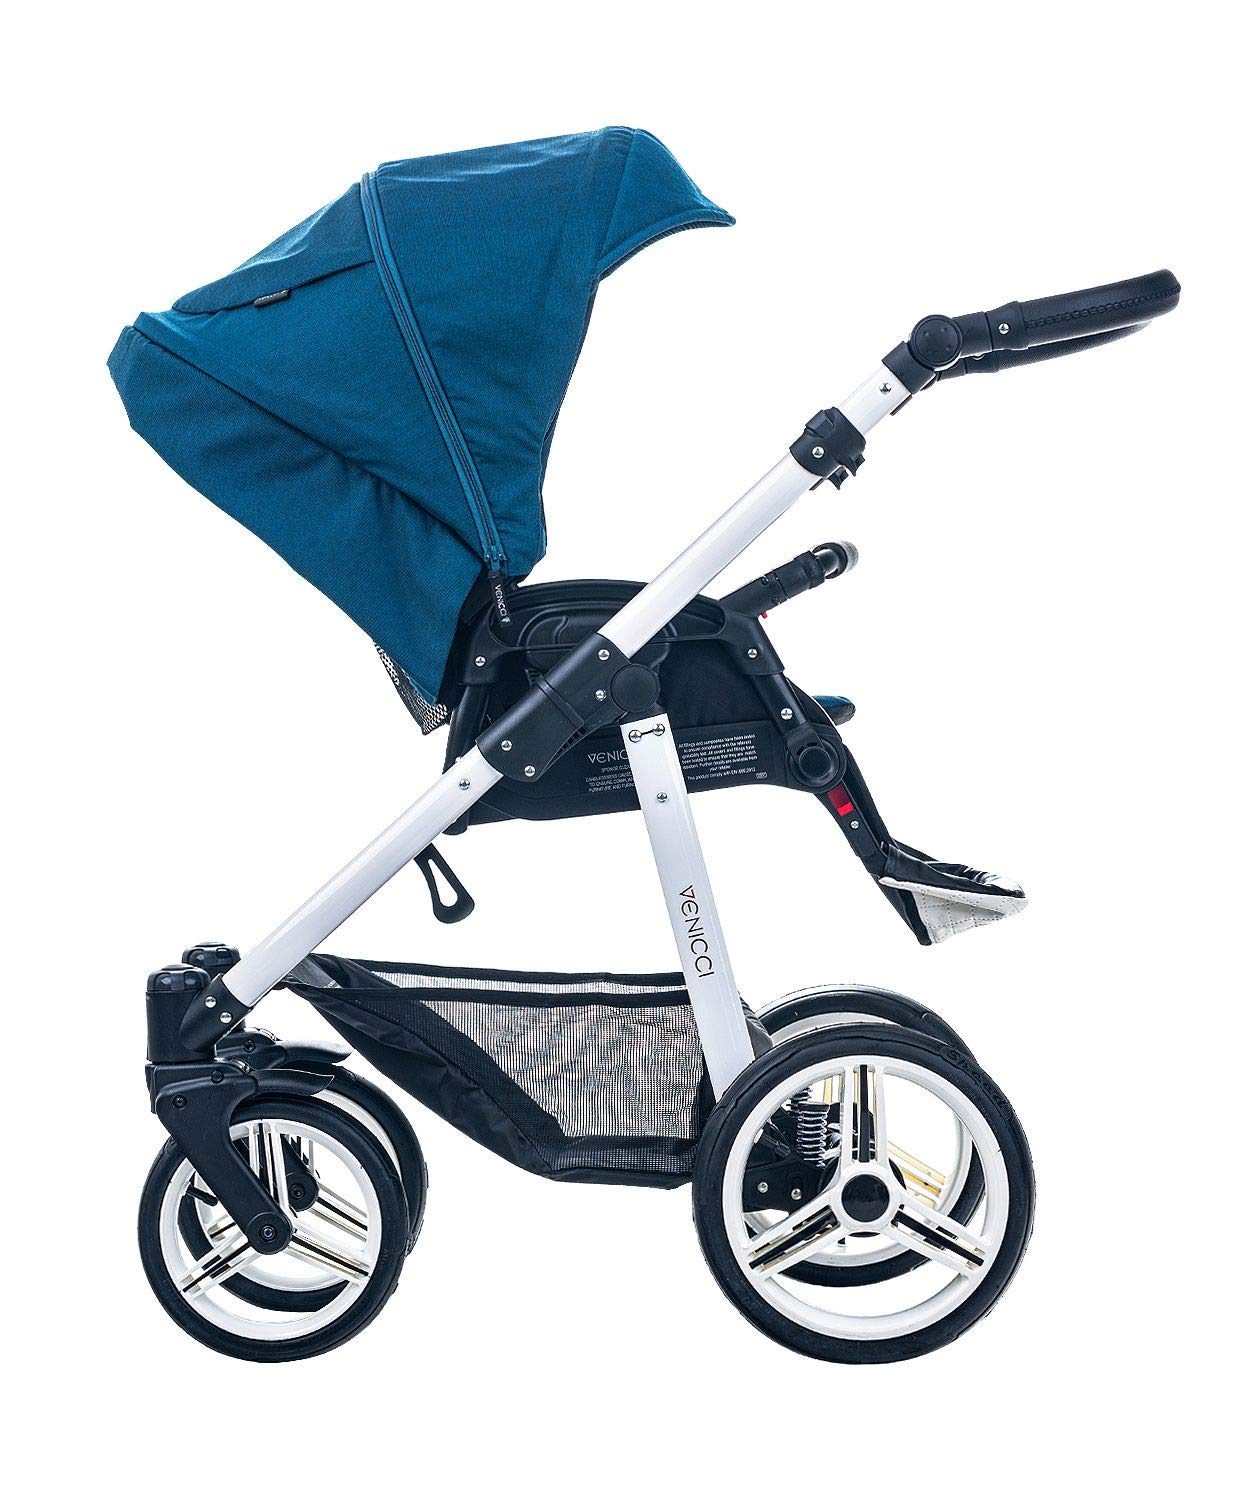 Venicci Pure 2-in-1 Travel System - Ocean Blue - with Carrycot + Changing Bag + Apron + Raincover + Mosquito Net + 5-Point Harness and UV 50+ Fabric + Cup Holder Venicci 2-in-1 Pram and Pushchair with custom travel options Suitable for your baby from birth until approximately 36 months 5-point harness to enhance the safety of your child 3